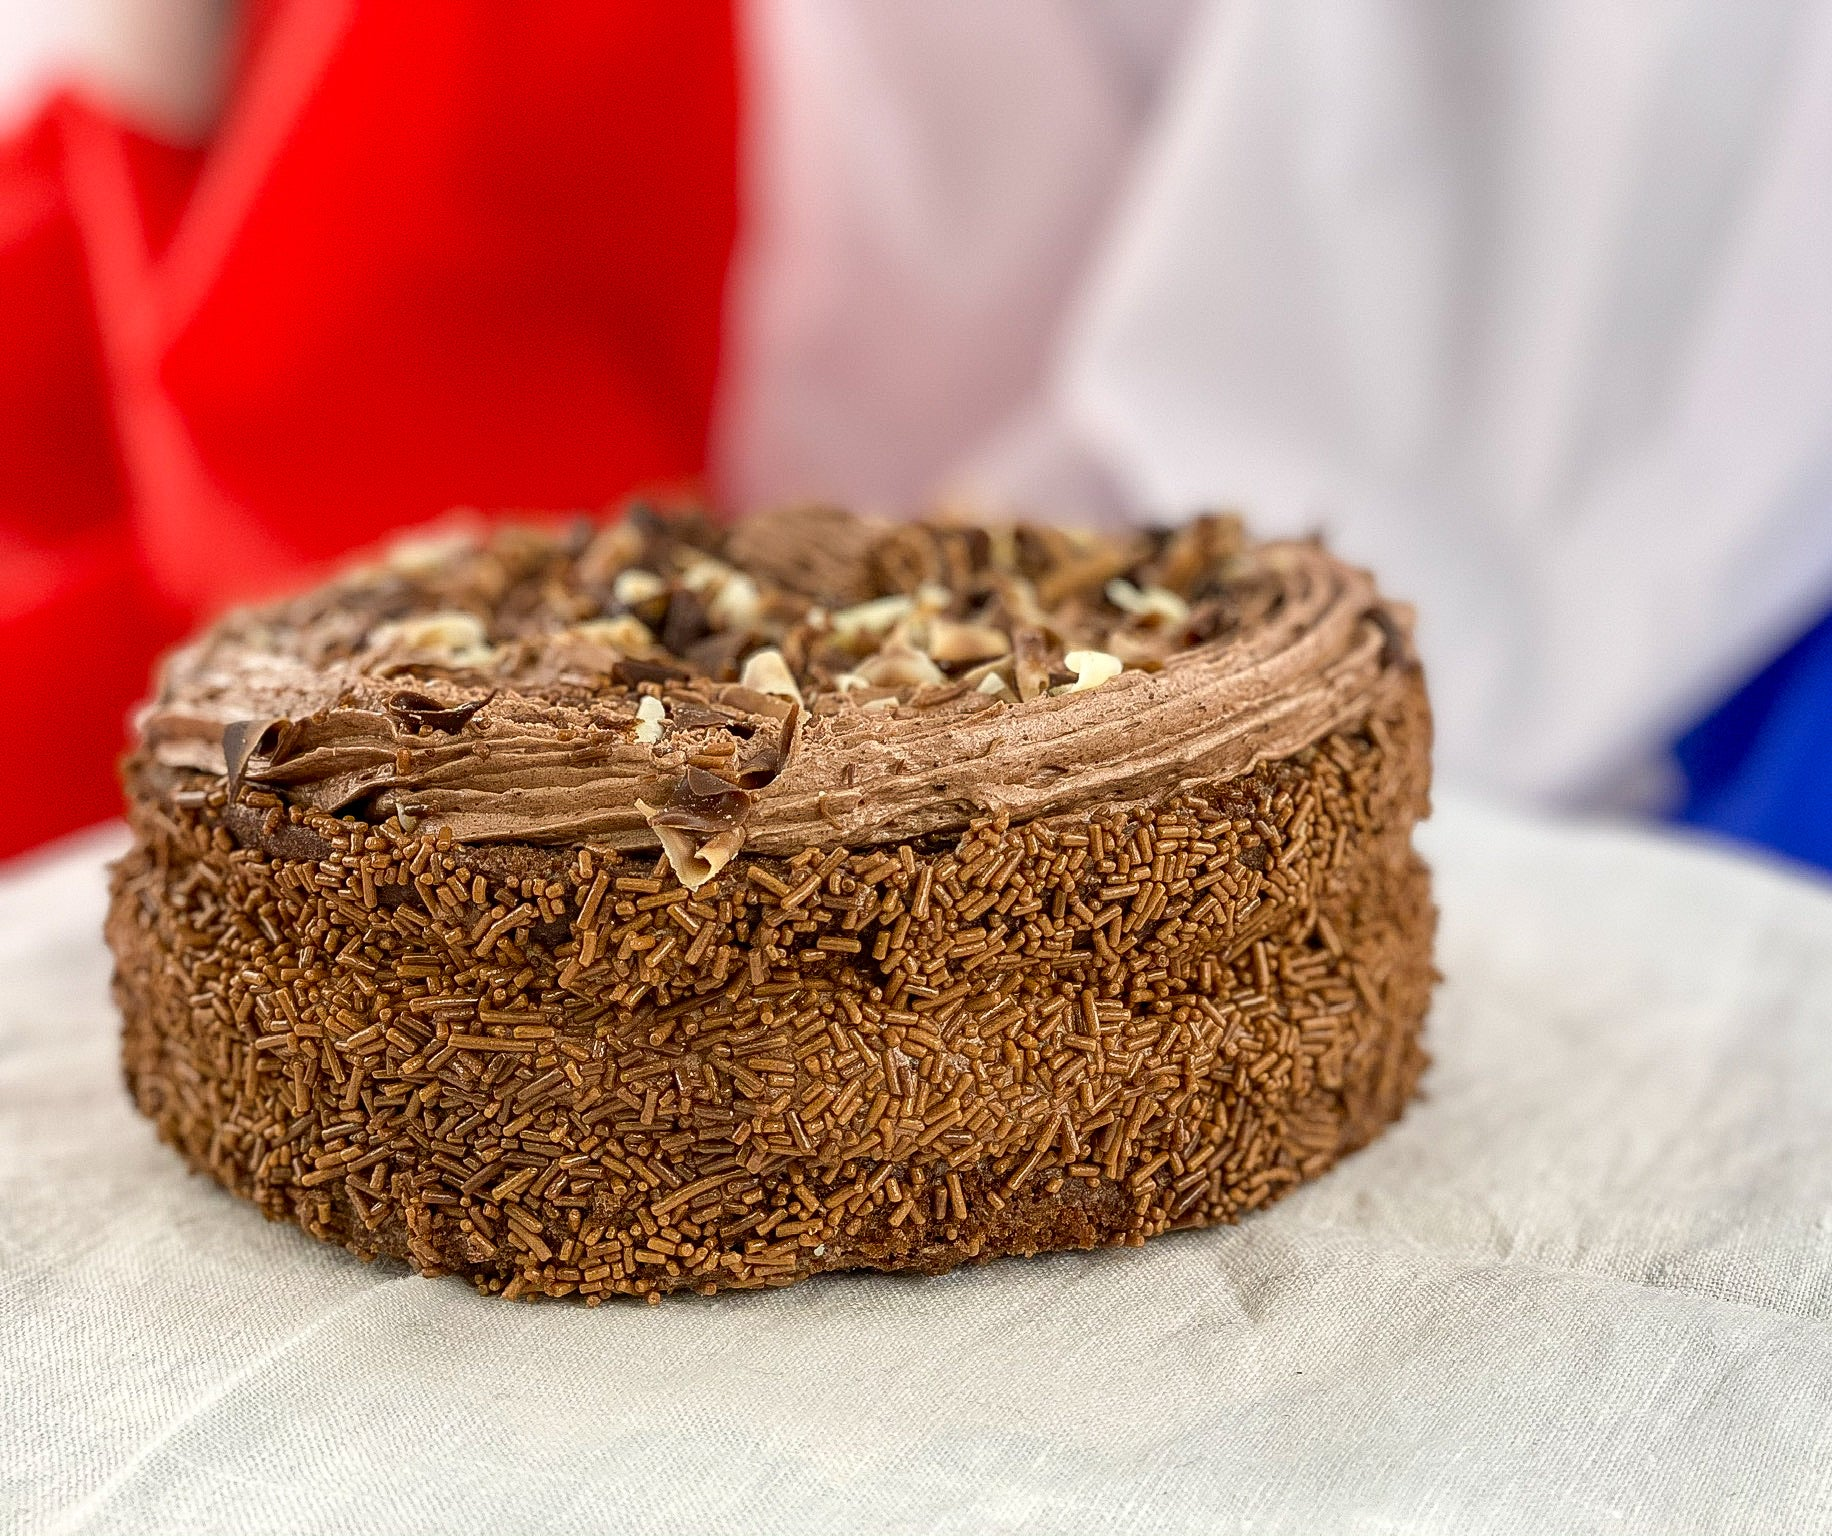 French Oven Chocolate Gateaux